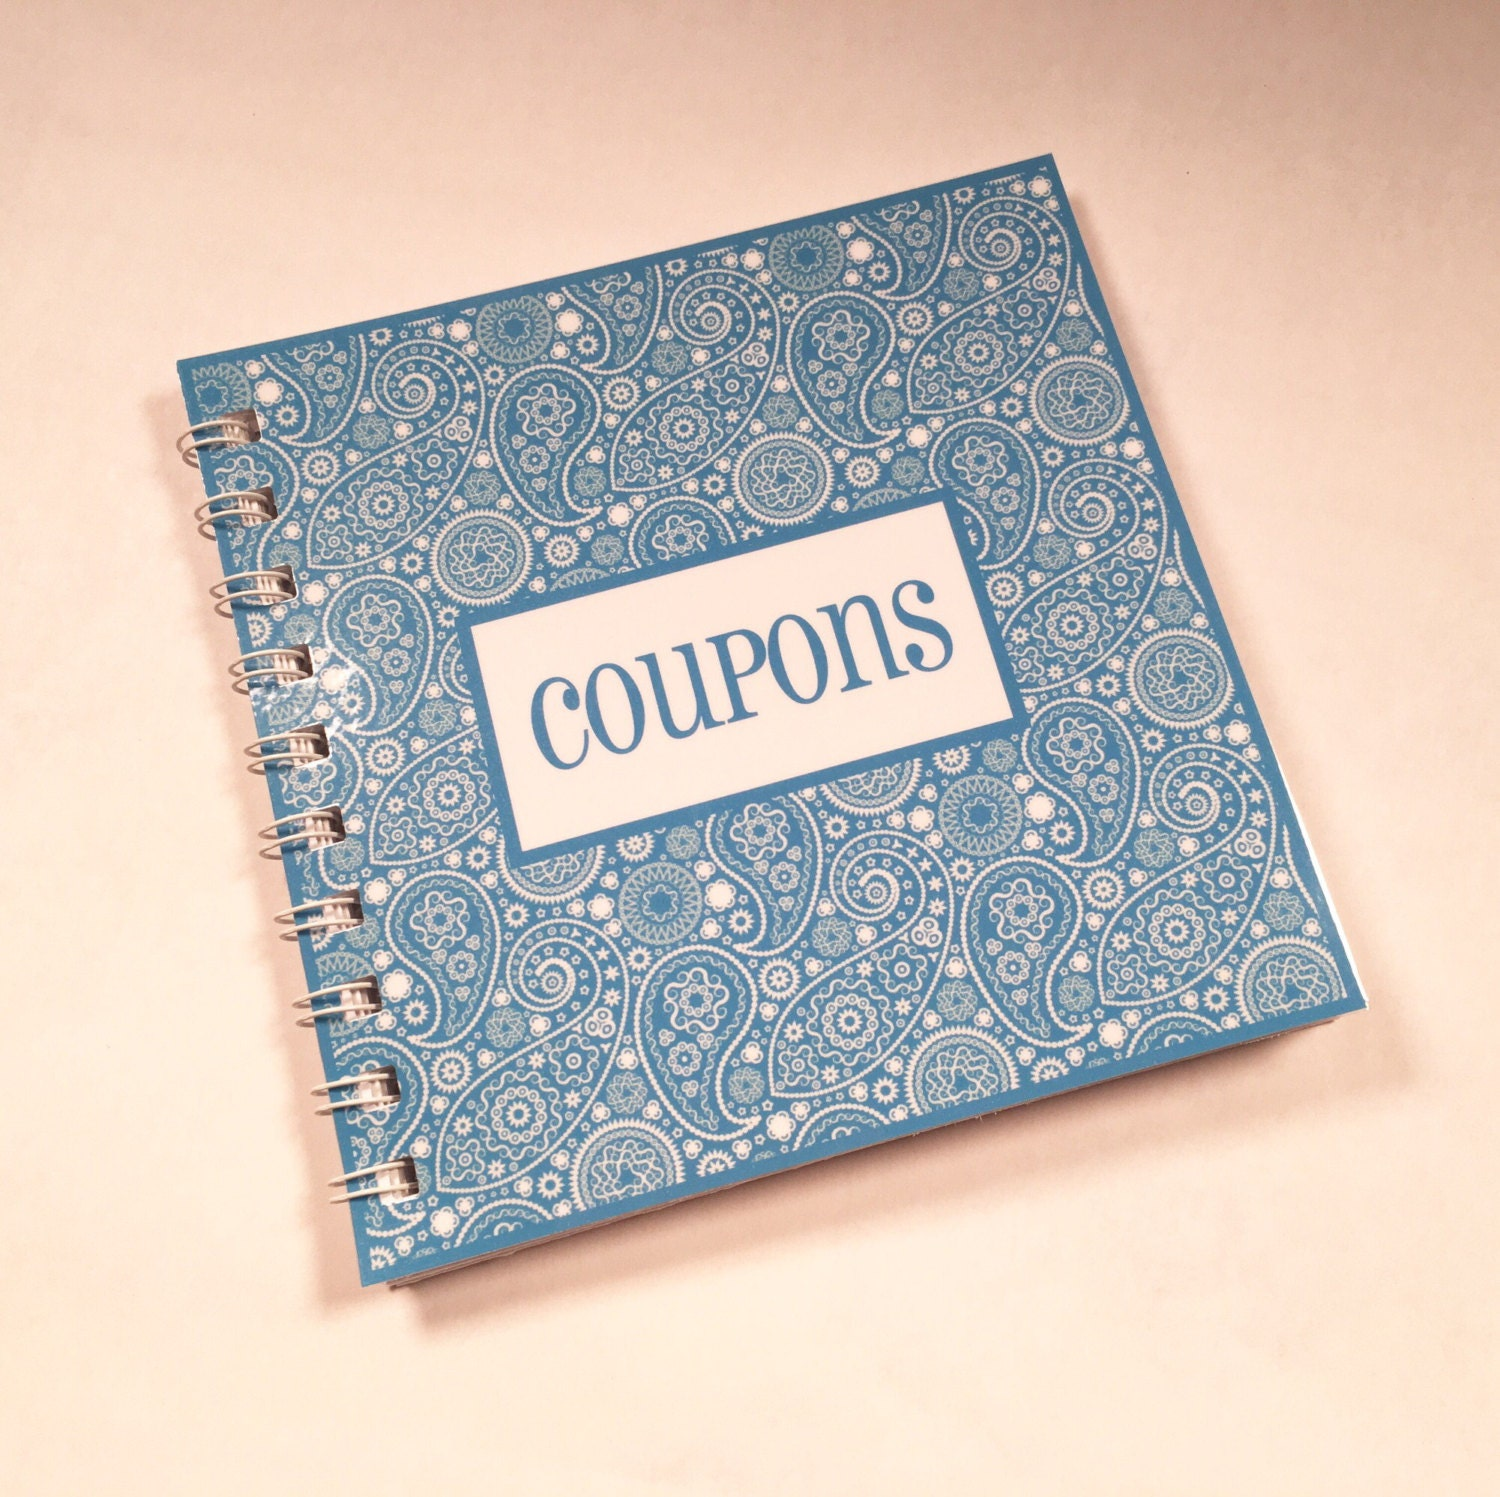 SMALL COUPON ORGANIZER. These small organizers can be found for $1 – $2 at many stores, including Dollar General, Target, and Walmart. There are usually anywhere from 6 – 10 sections within the case, so you can organize your coupons. There are also tabs where you can add labels to help you find the ones you need.